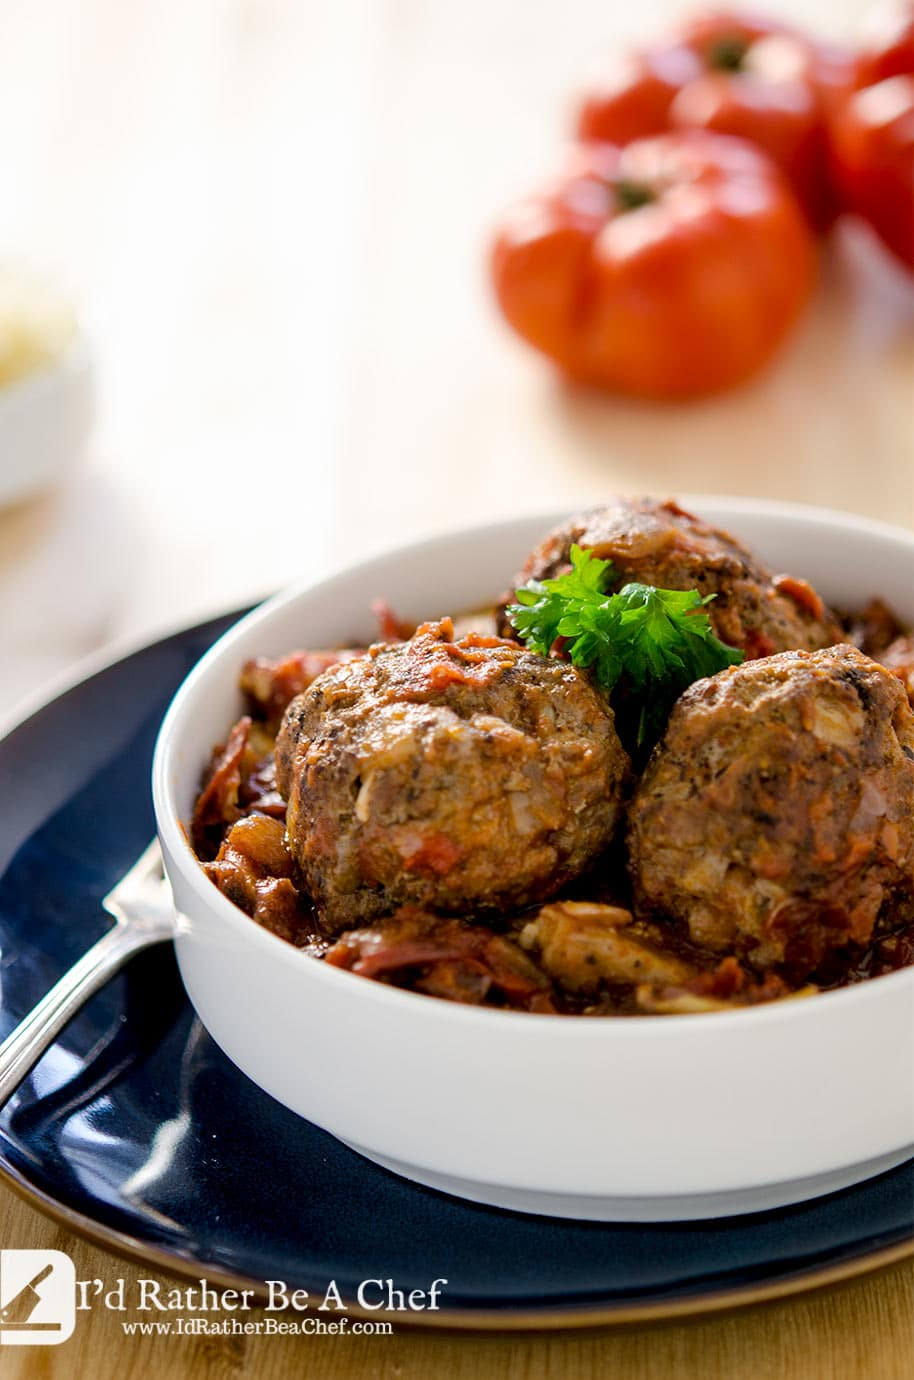 Use this low carb meatball recipe with marinara, zoodles, noodles, sandwiches or whatever else you would need a meatball for! Meatball hoagie? Meatball sub? Meatball parm? All good.